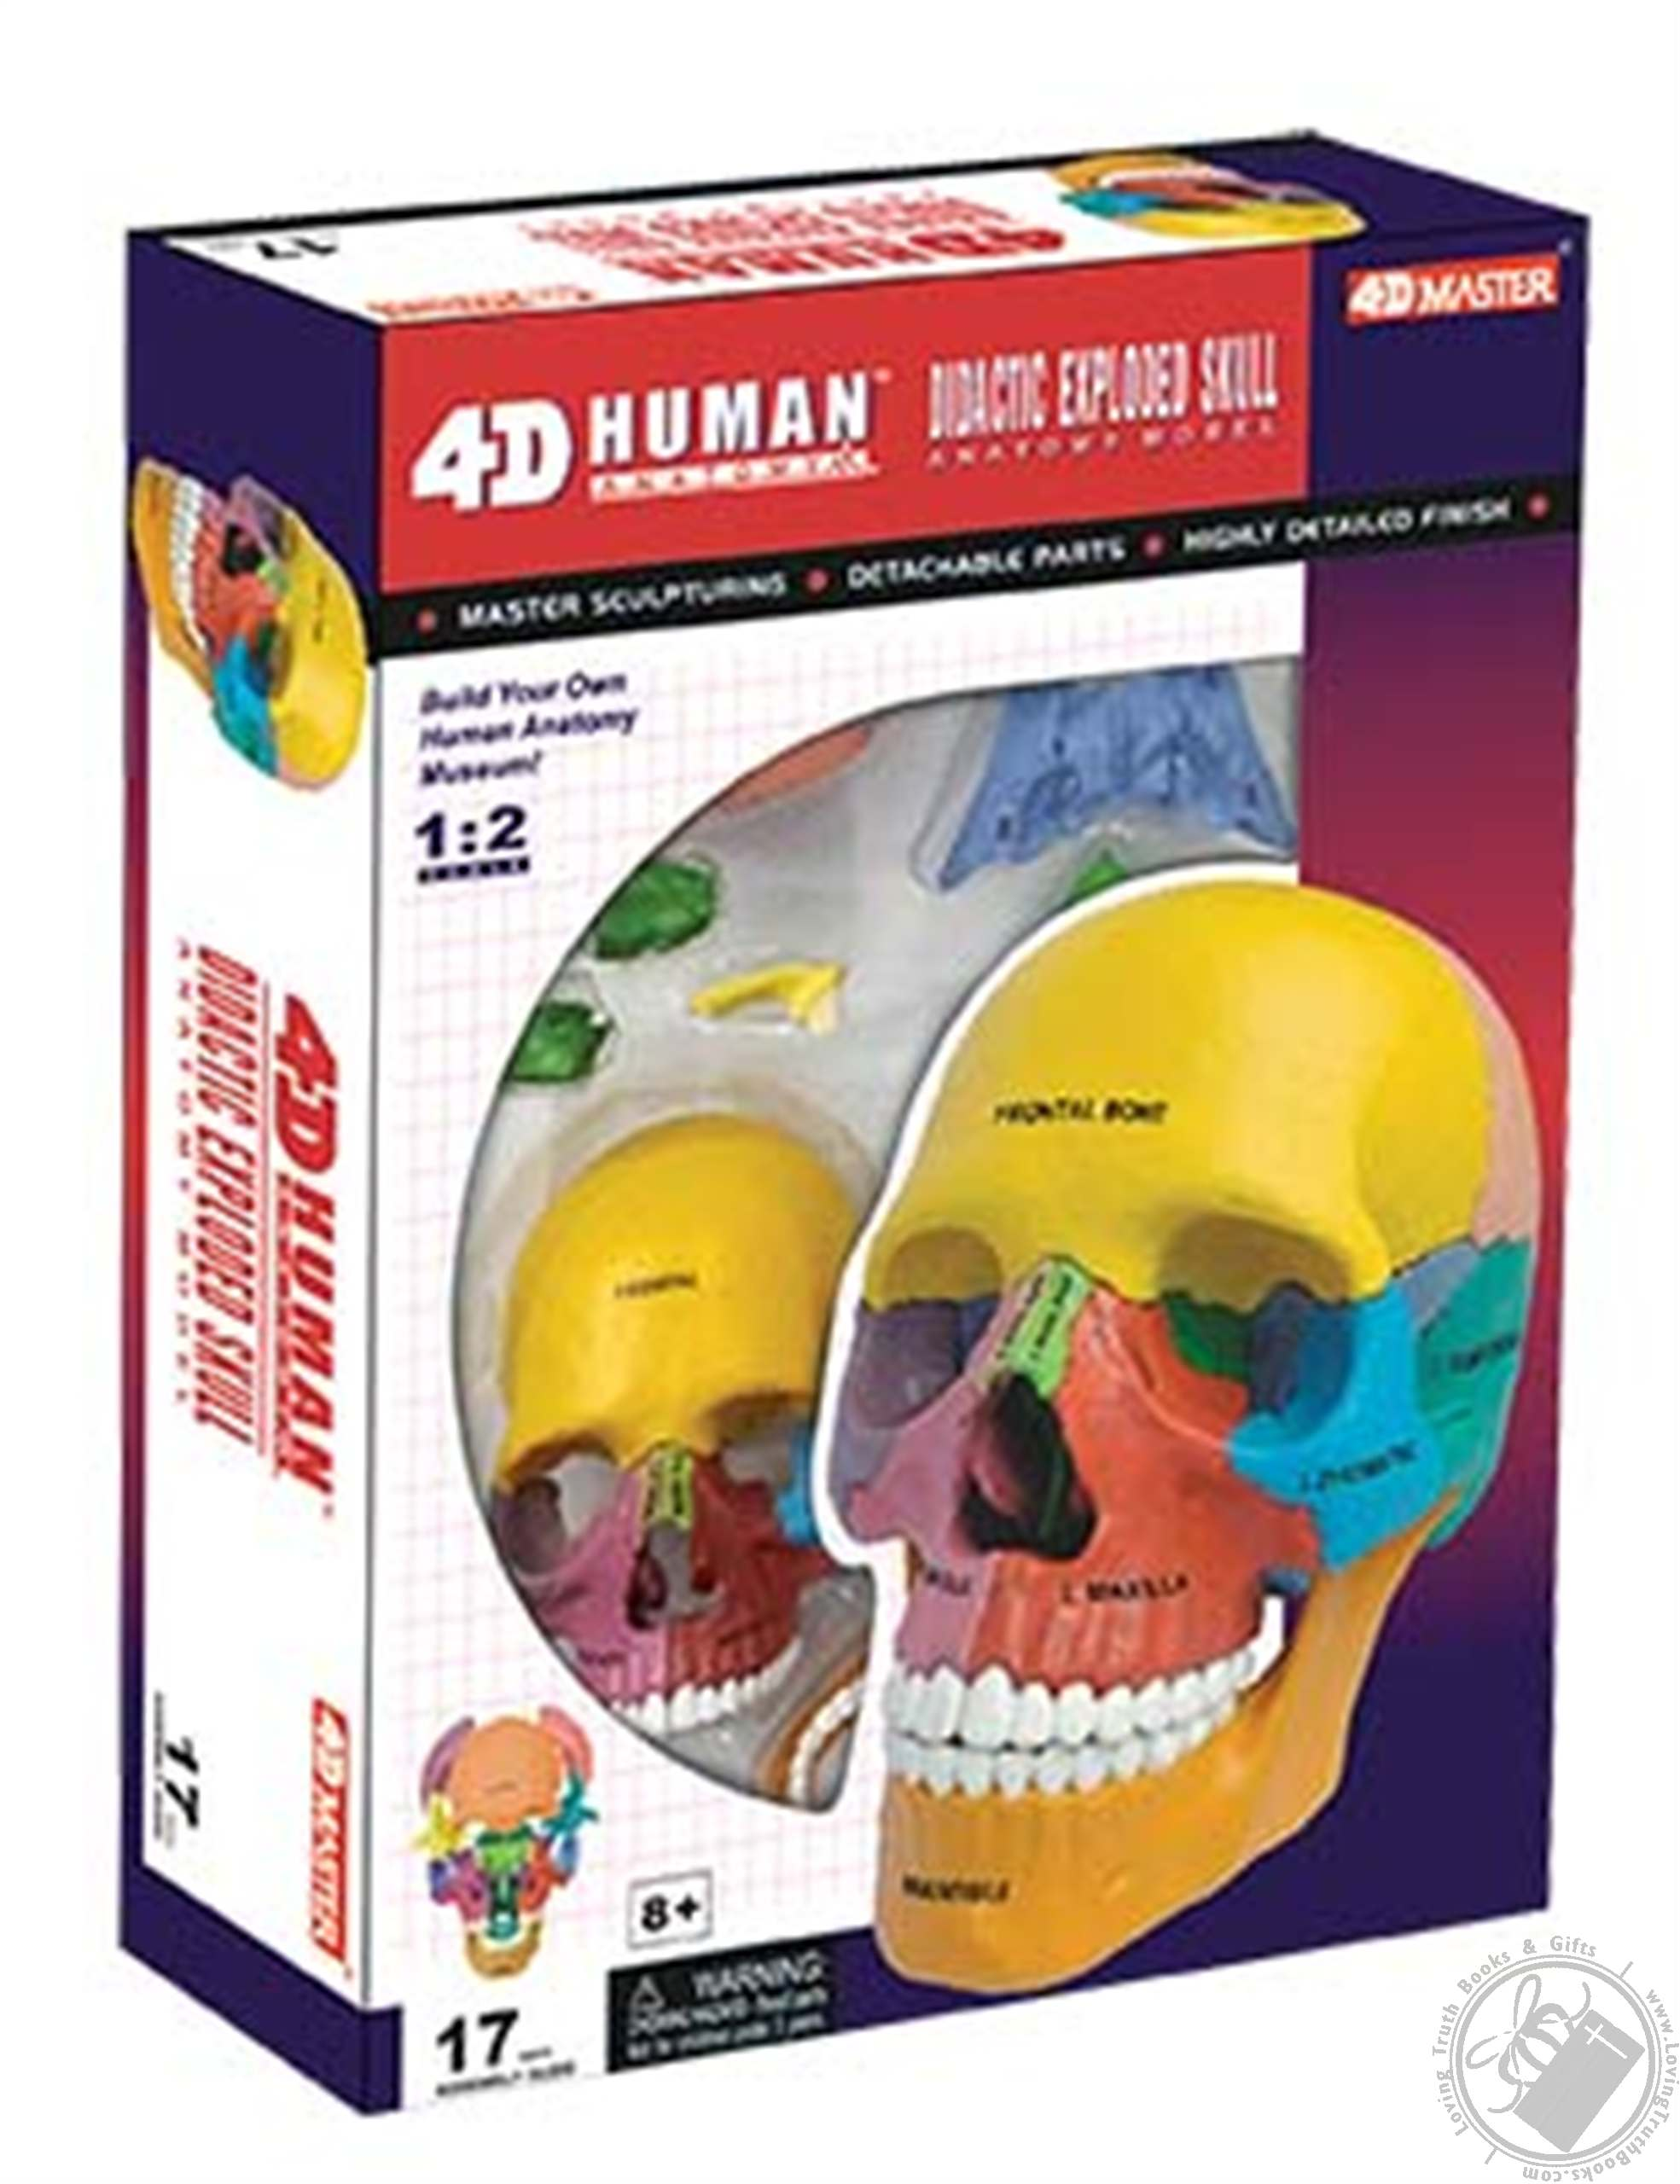 4d Human Anatomy Didactic Exploded Skull Model 17 Pieces For Ages 8